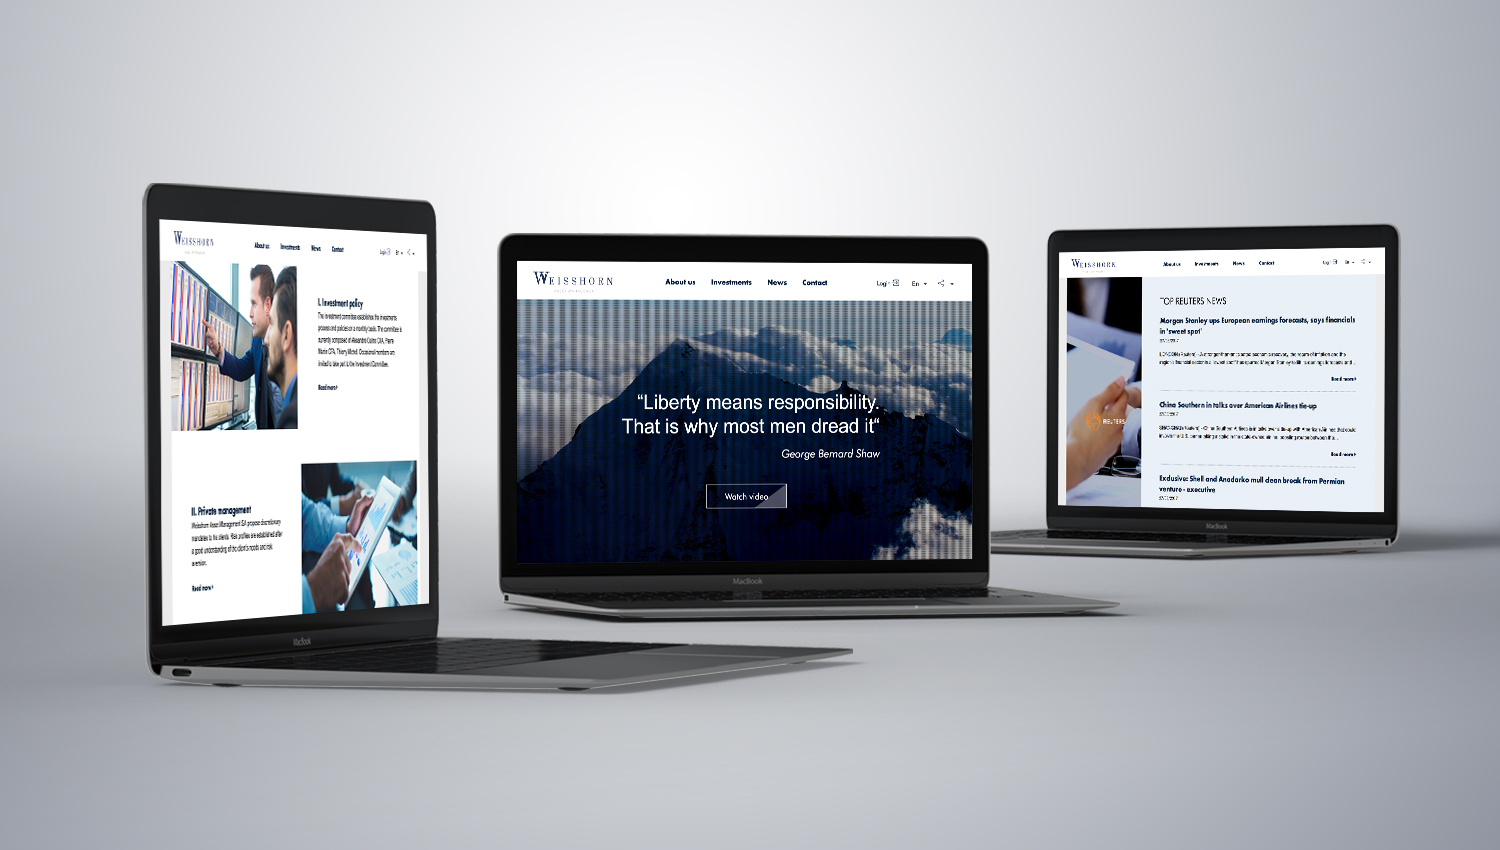 Web design desktop view for Weisshorn 1 by 8 Ways